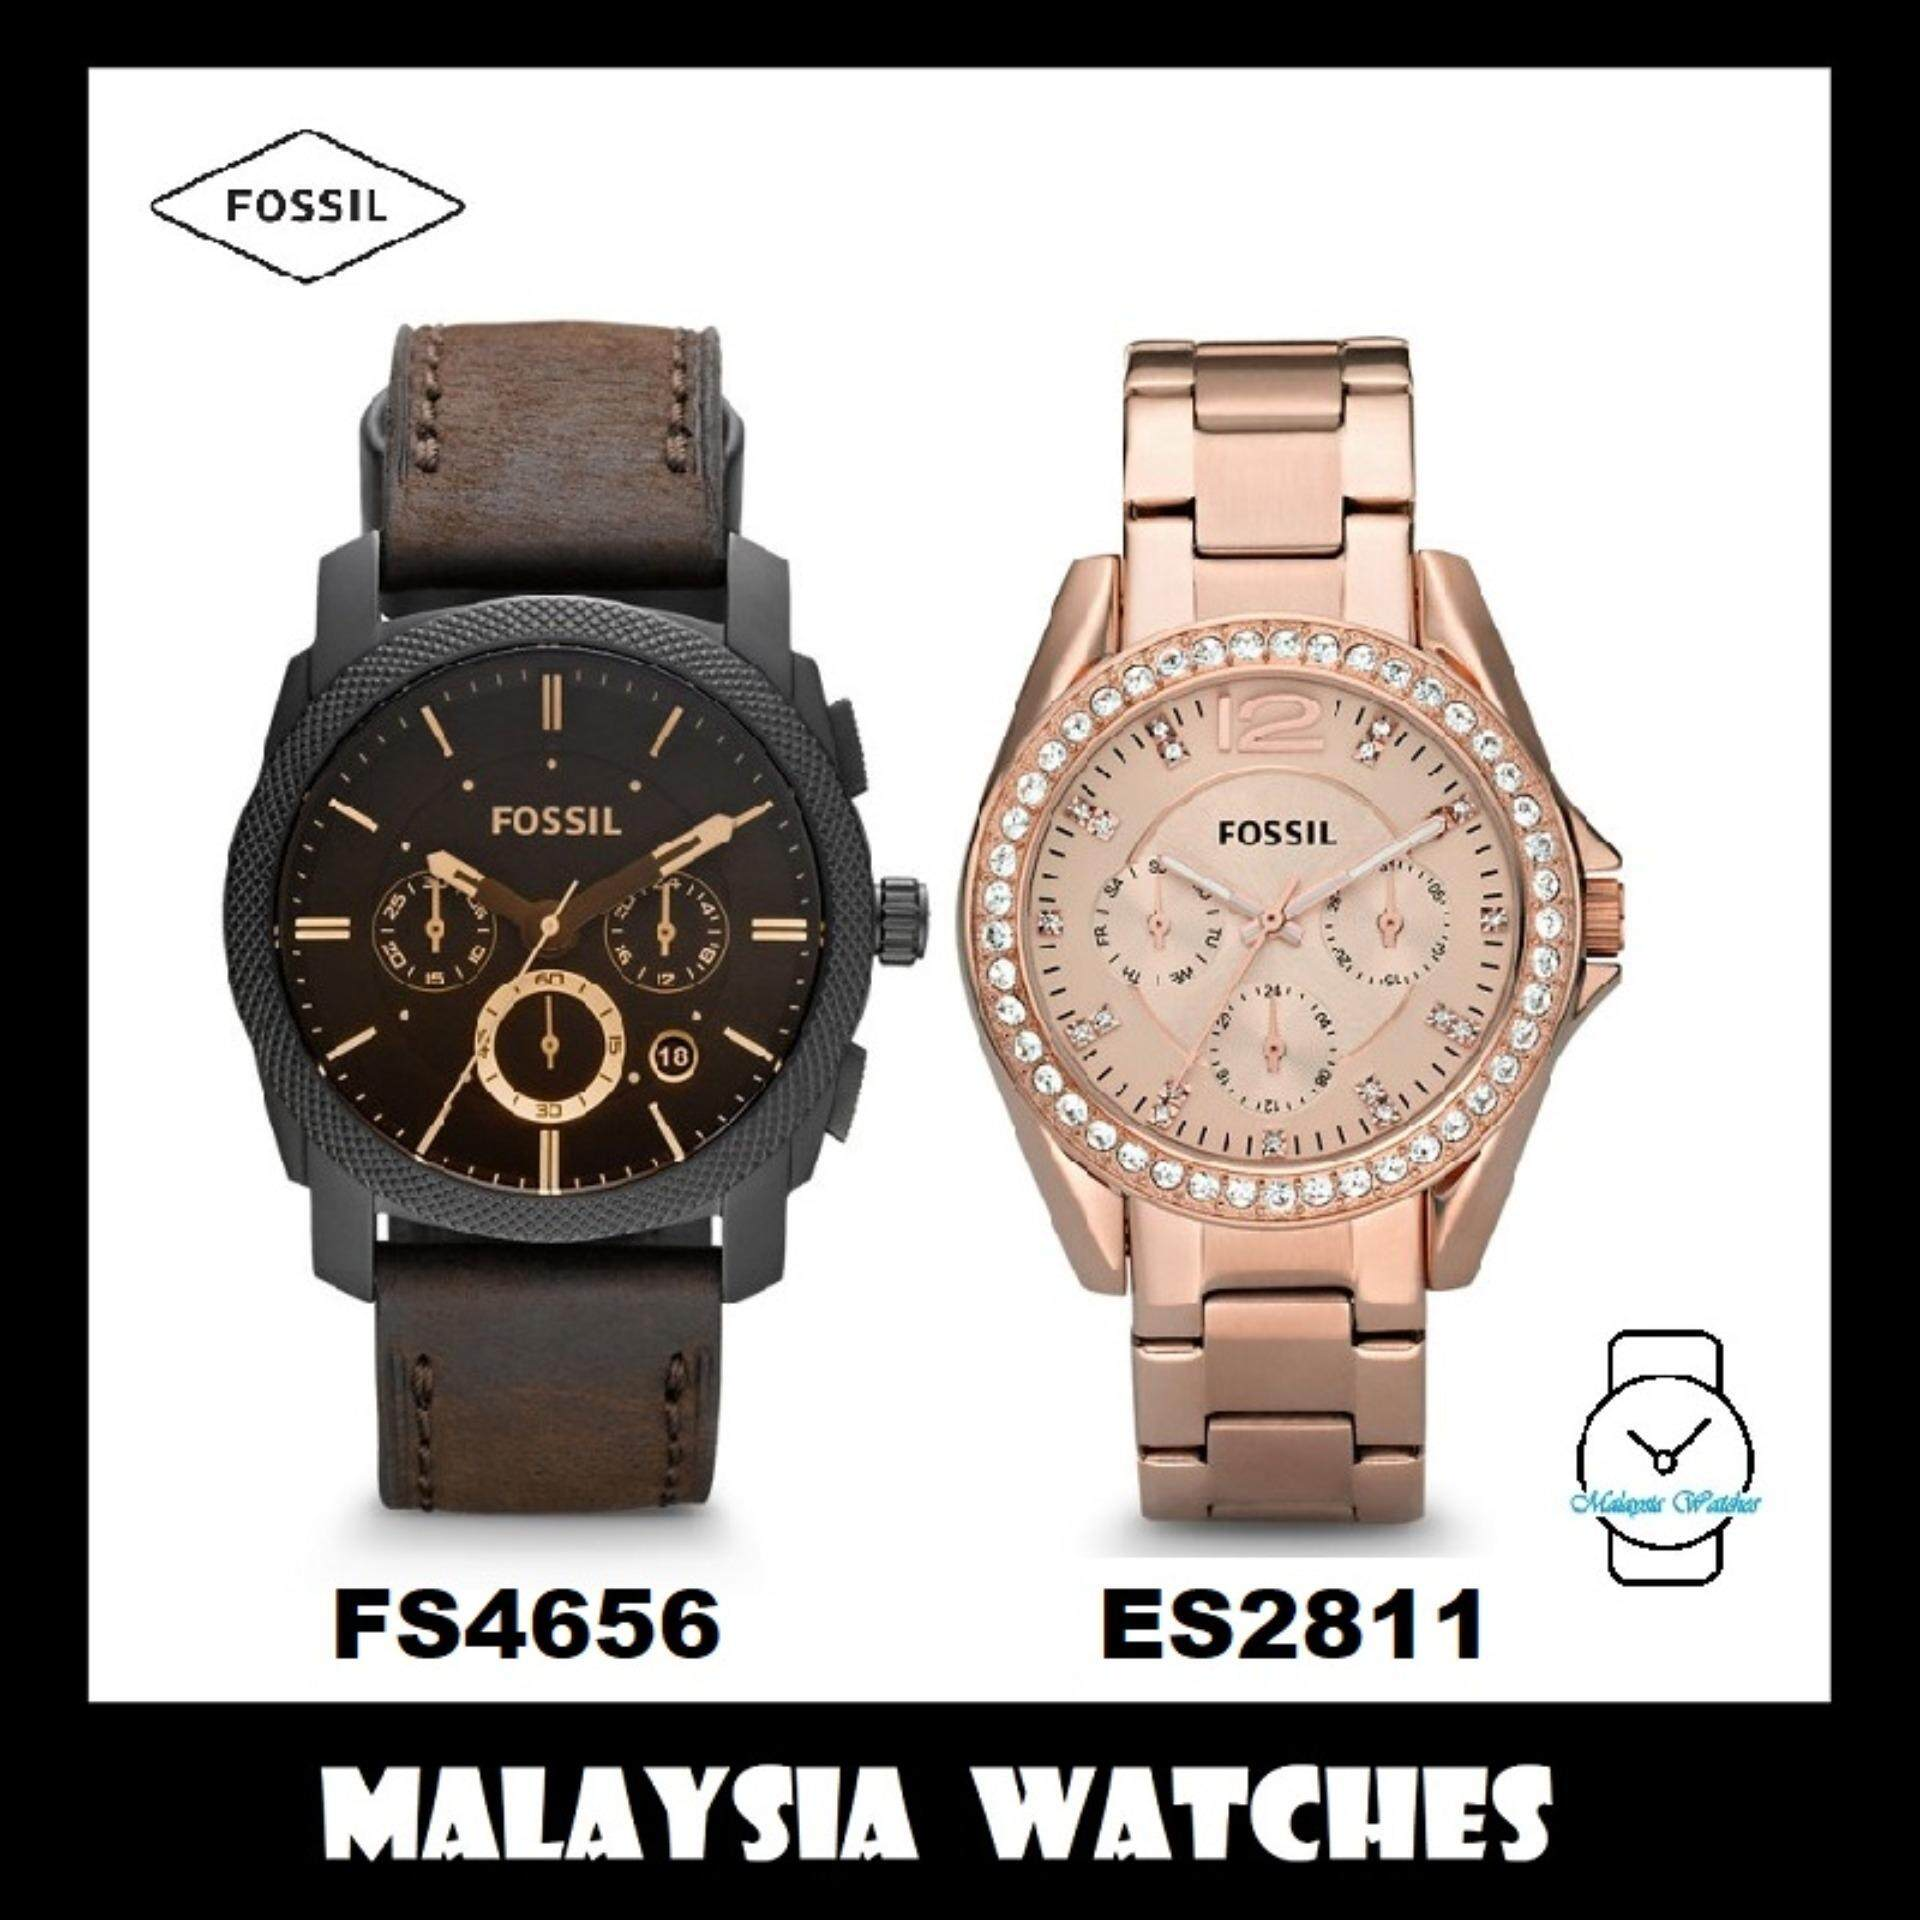 Fossil Jam Tangan Wanita Fossil ES3838 Original BoyfriendChronograph Navy  Leather Watch. Source · (OFFICIAL WARRANTY) Fossil Men s   Women s FS4656    ES2811 ... a878755745